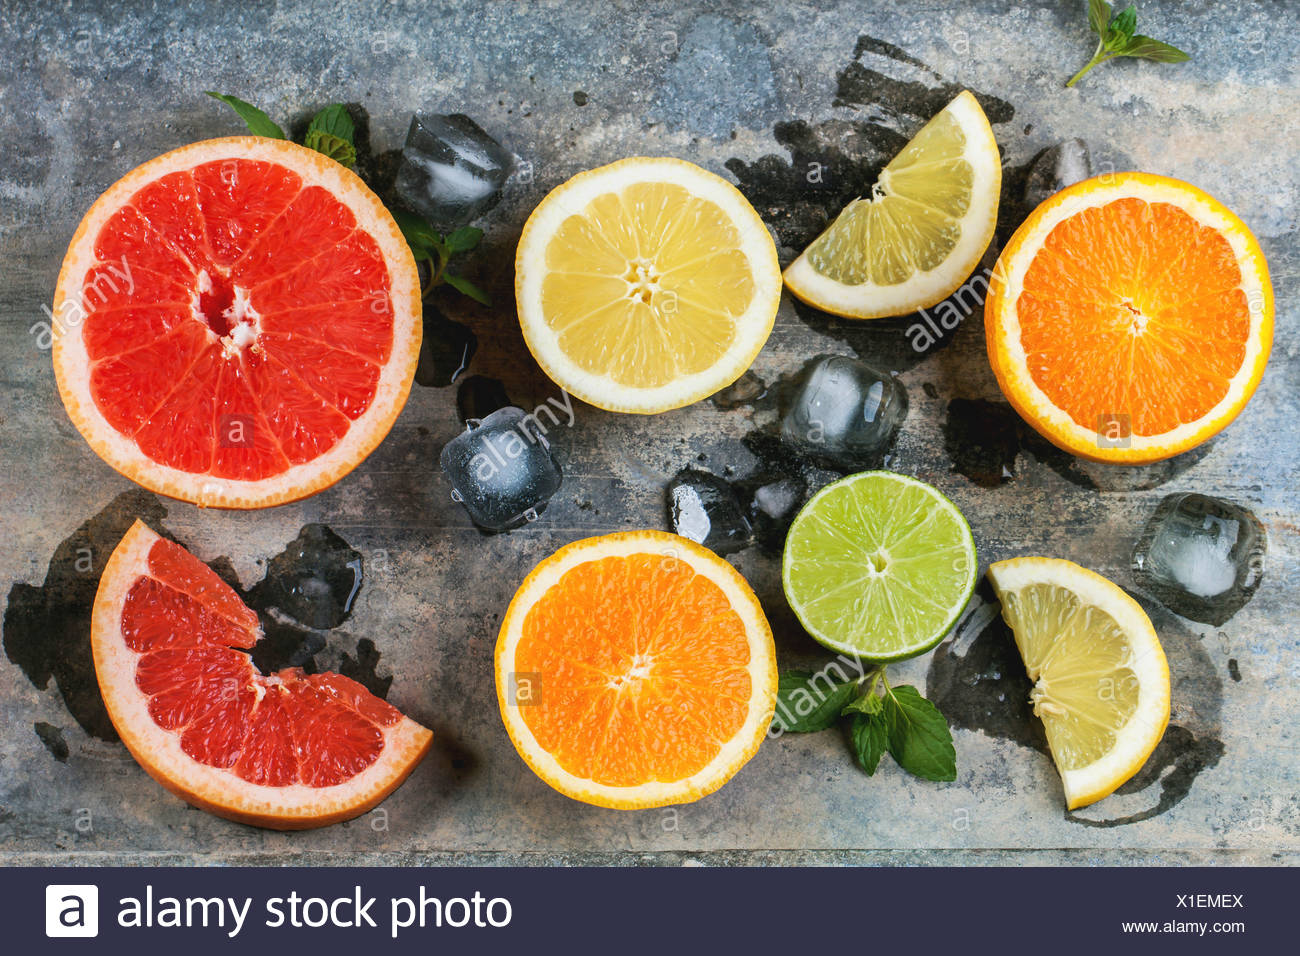 Set of sliced citrus fruits lemon, lime, orange, grapefruit with mint and ice over metal background. Top view. - Stock Image